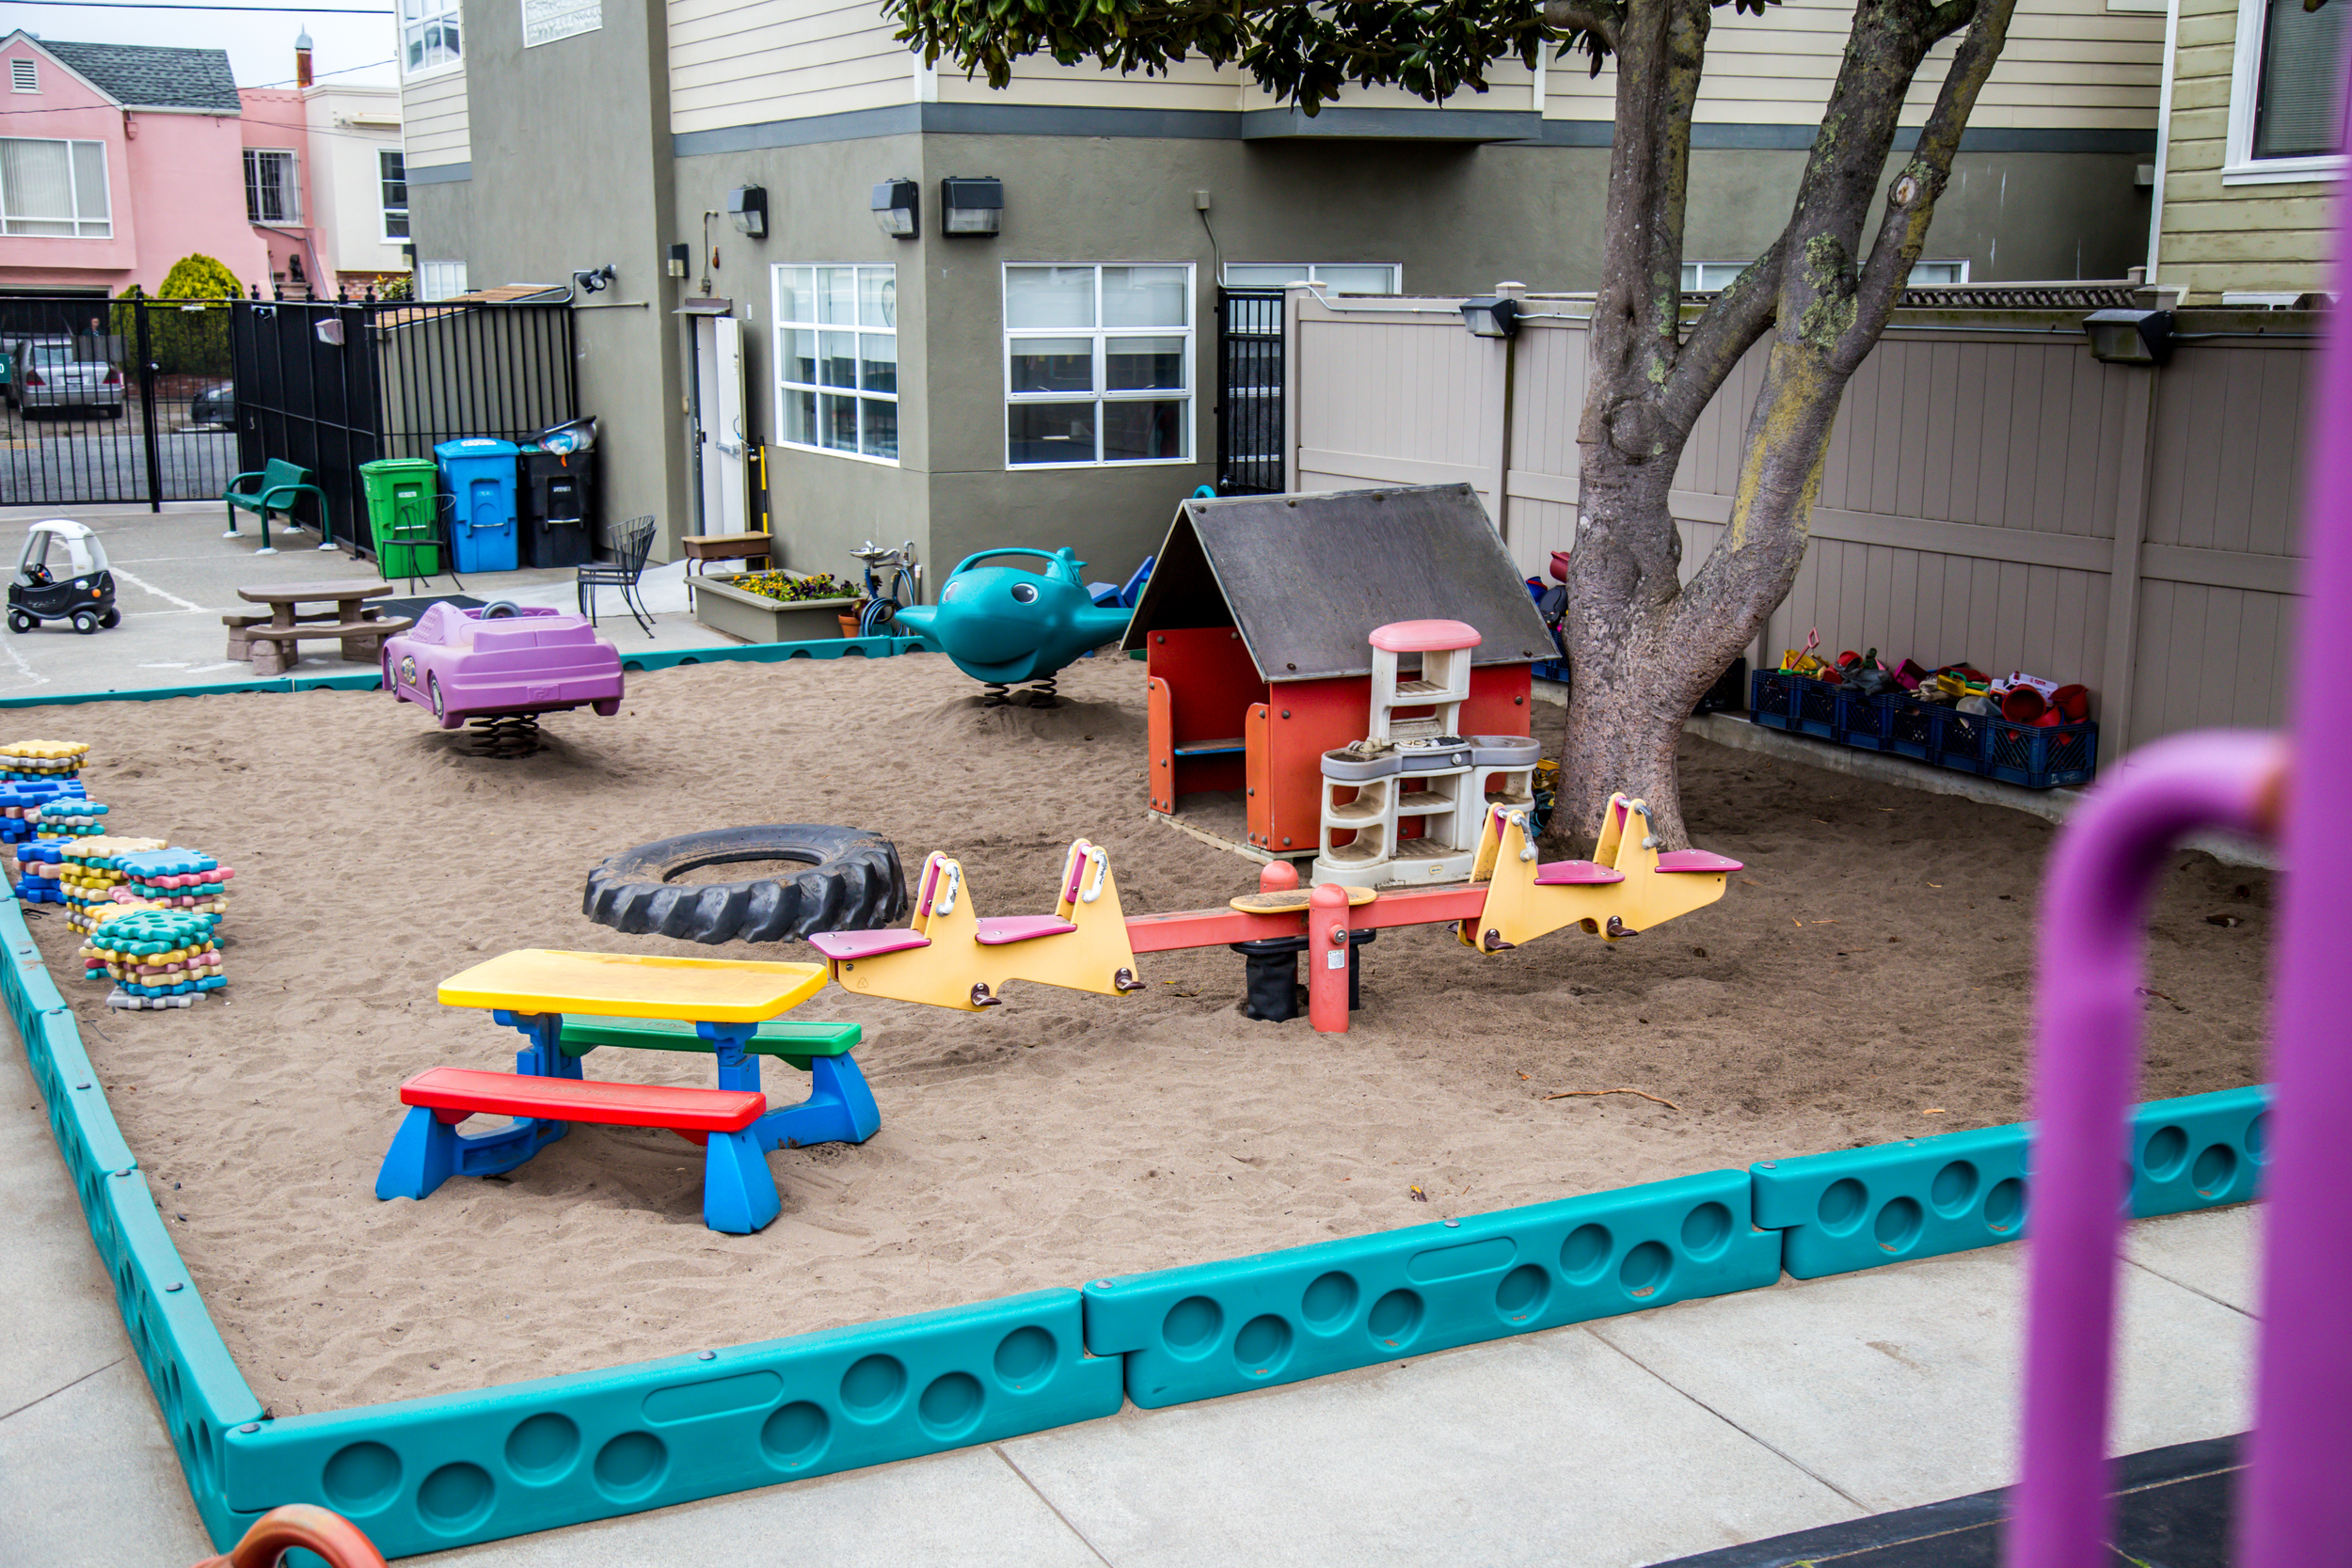 Our sandbox has several permanent structures within it: a small house, and airplane and car to climb in and ride, and a seesaw. From dinosaursto shovels and pails, cups and sieves, tables and blocks, there's something for everyone!